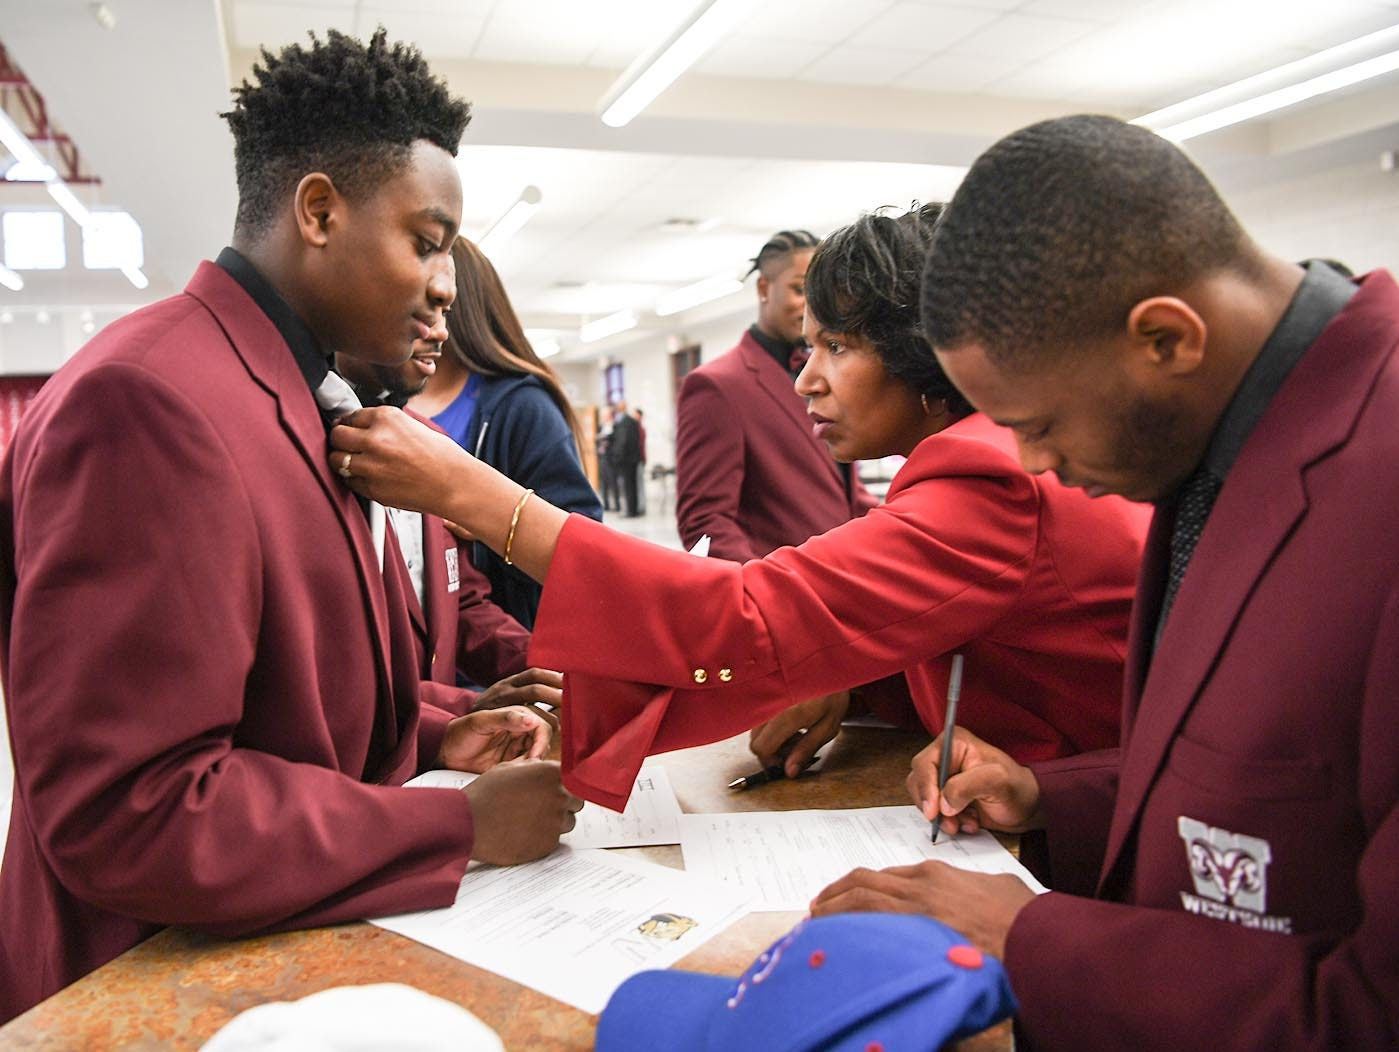 Wingate University signee Nasir Evans, left, gets his tie checked by his mother Valerie Evans, right, while filling out paperwork near Presbyterian College signee Tim Johnson, right, and five other teammates from Westside High School football on National Letter of Intent day at Westside High School in Anderson Wednesday.